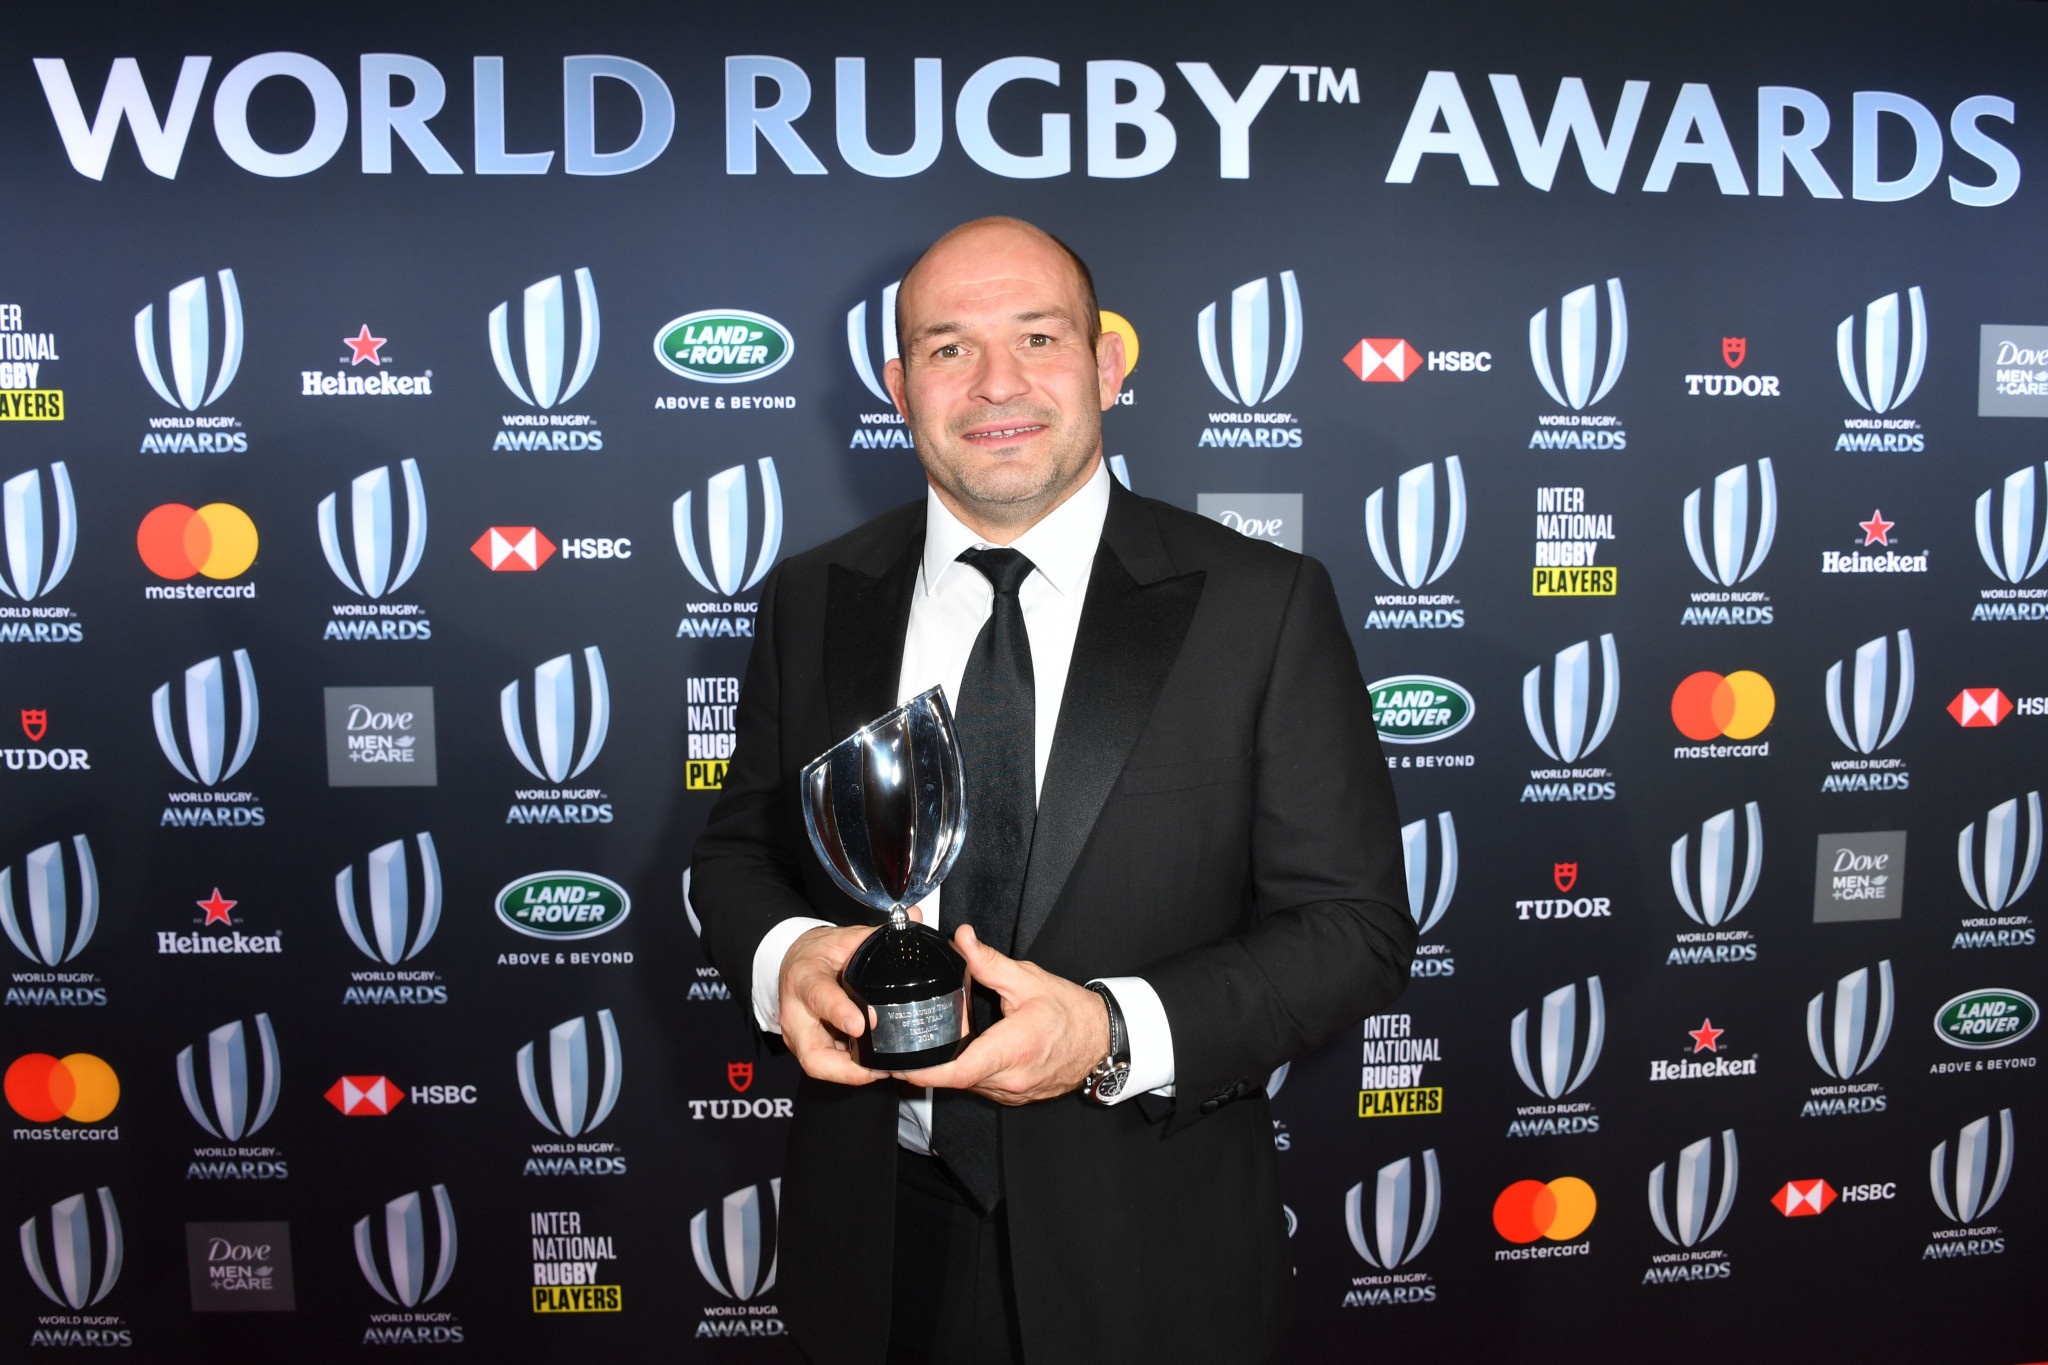 Irish captain Rory Best accepted the Team of the Year Award after they achieved their most successful ever year ©Getty Images